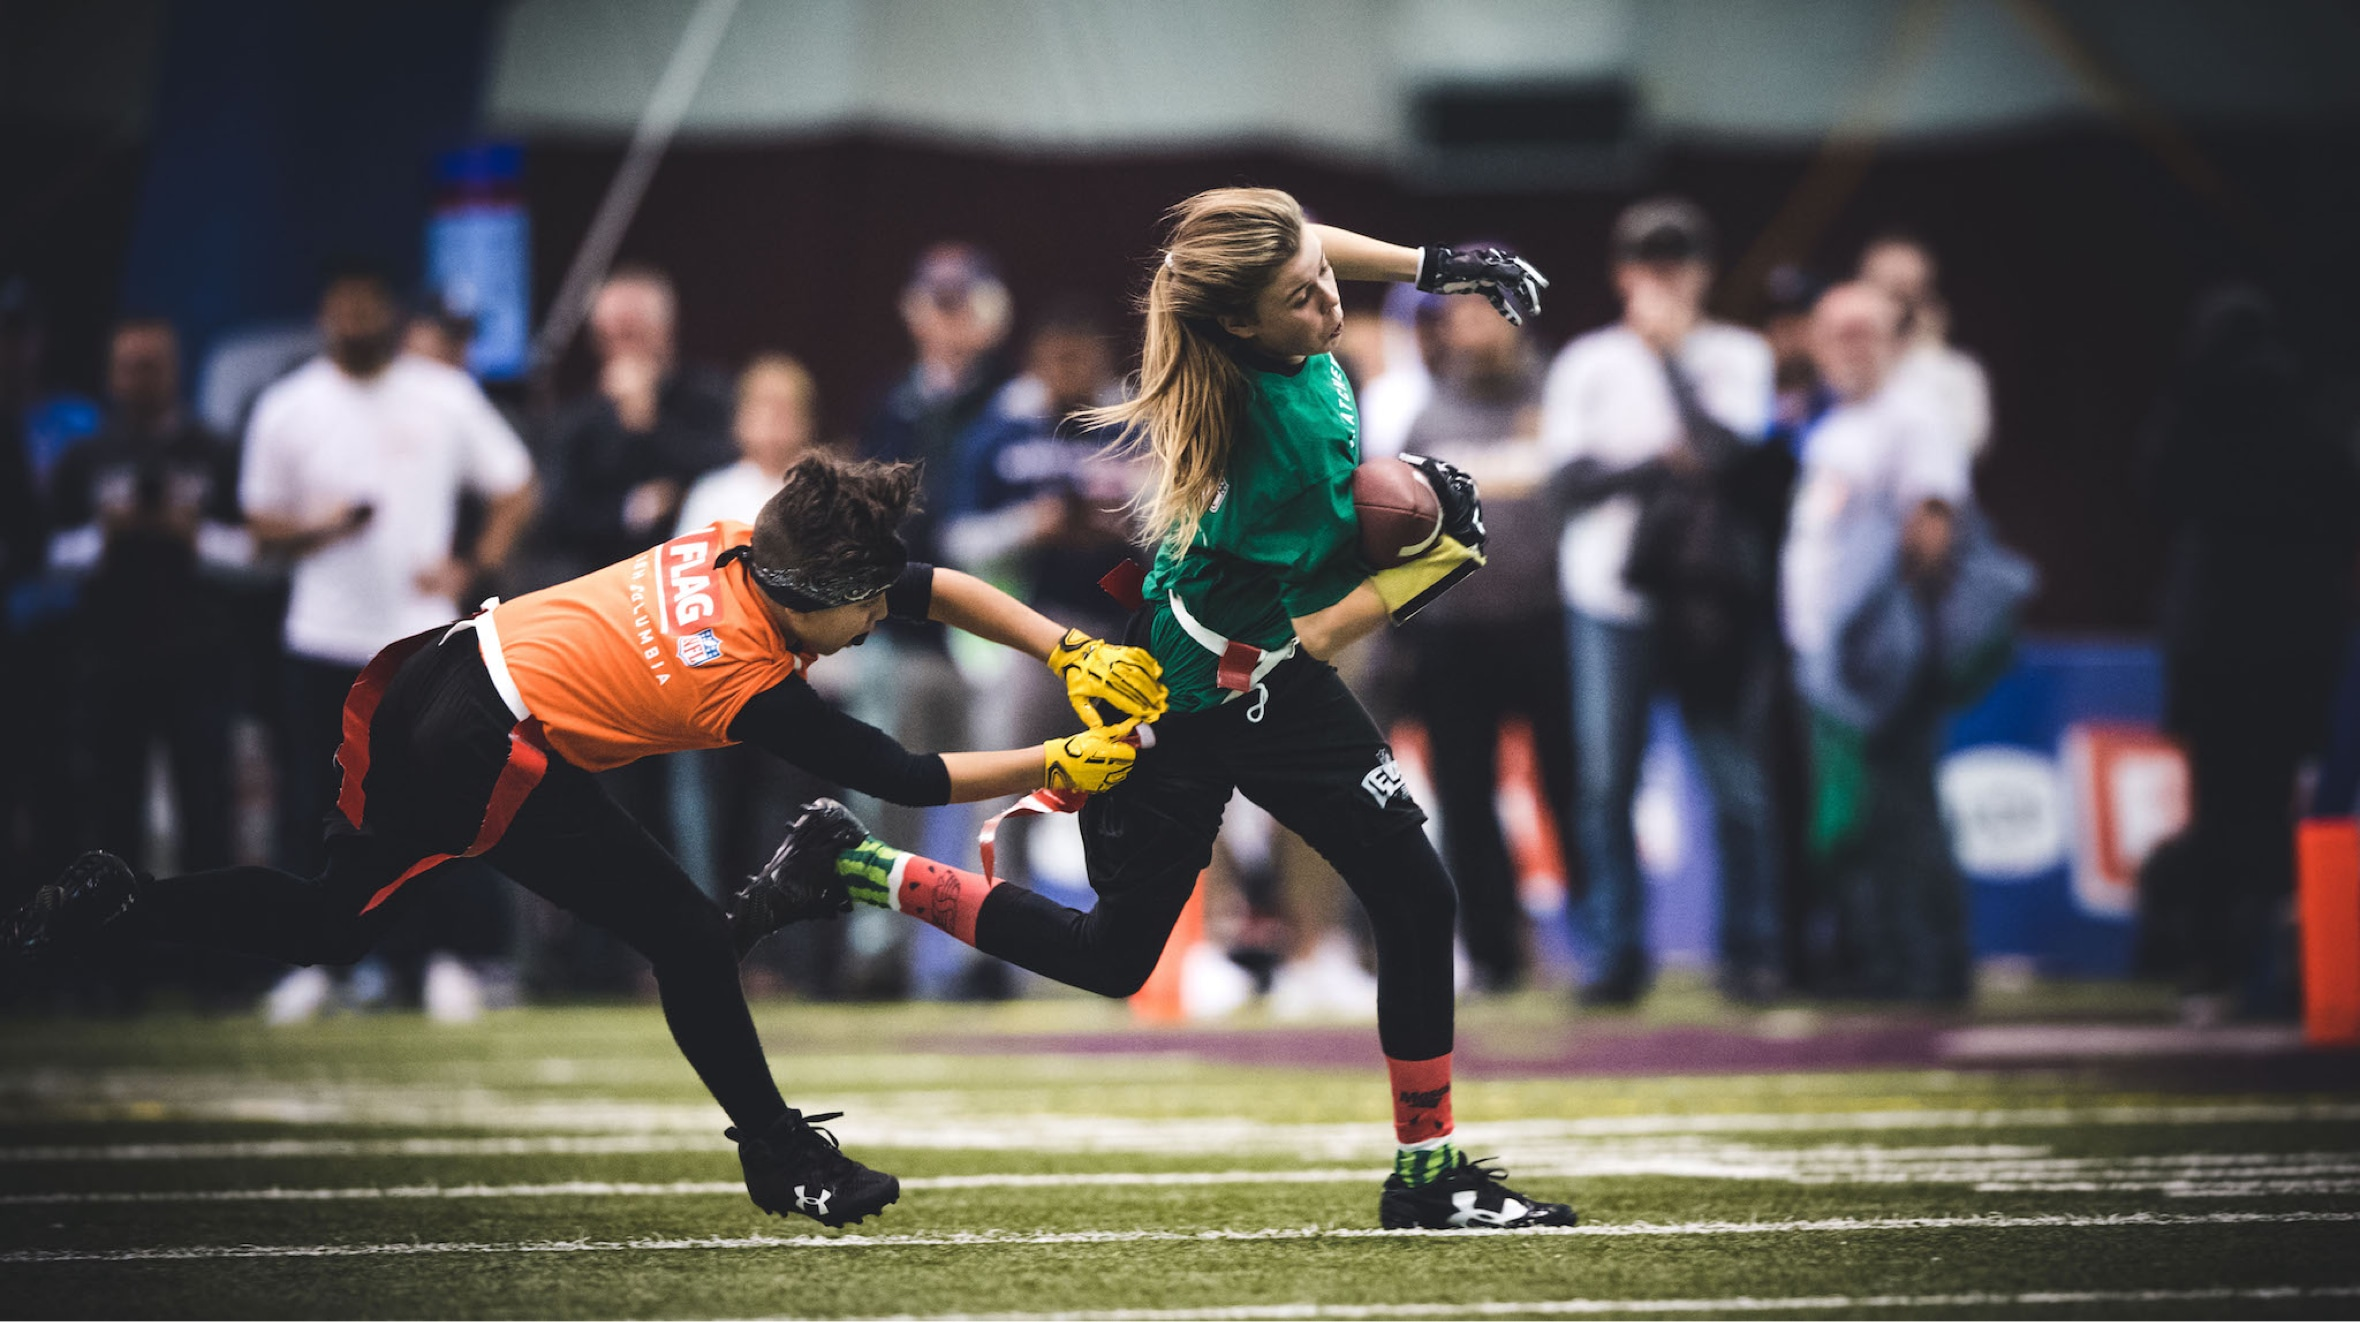 Image of two young Flag Football players